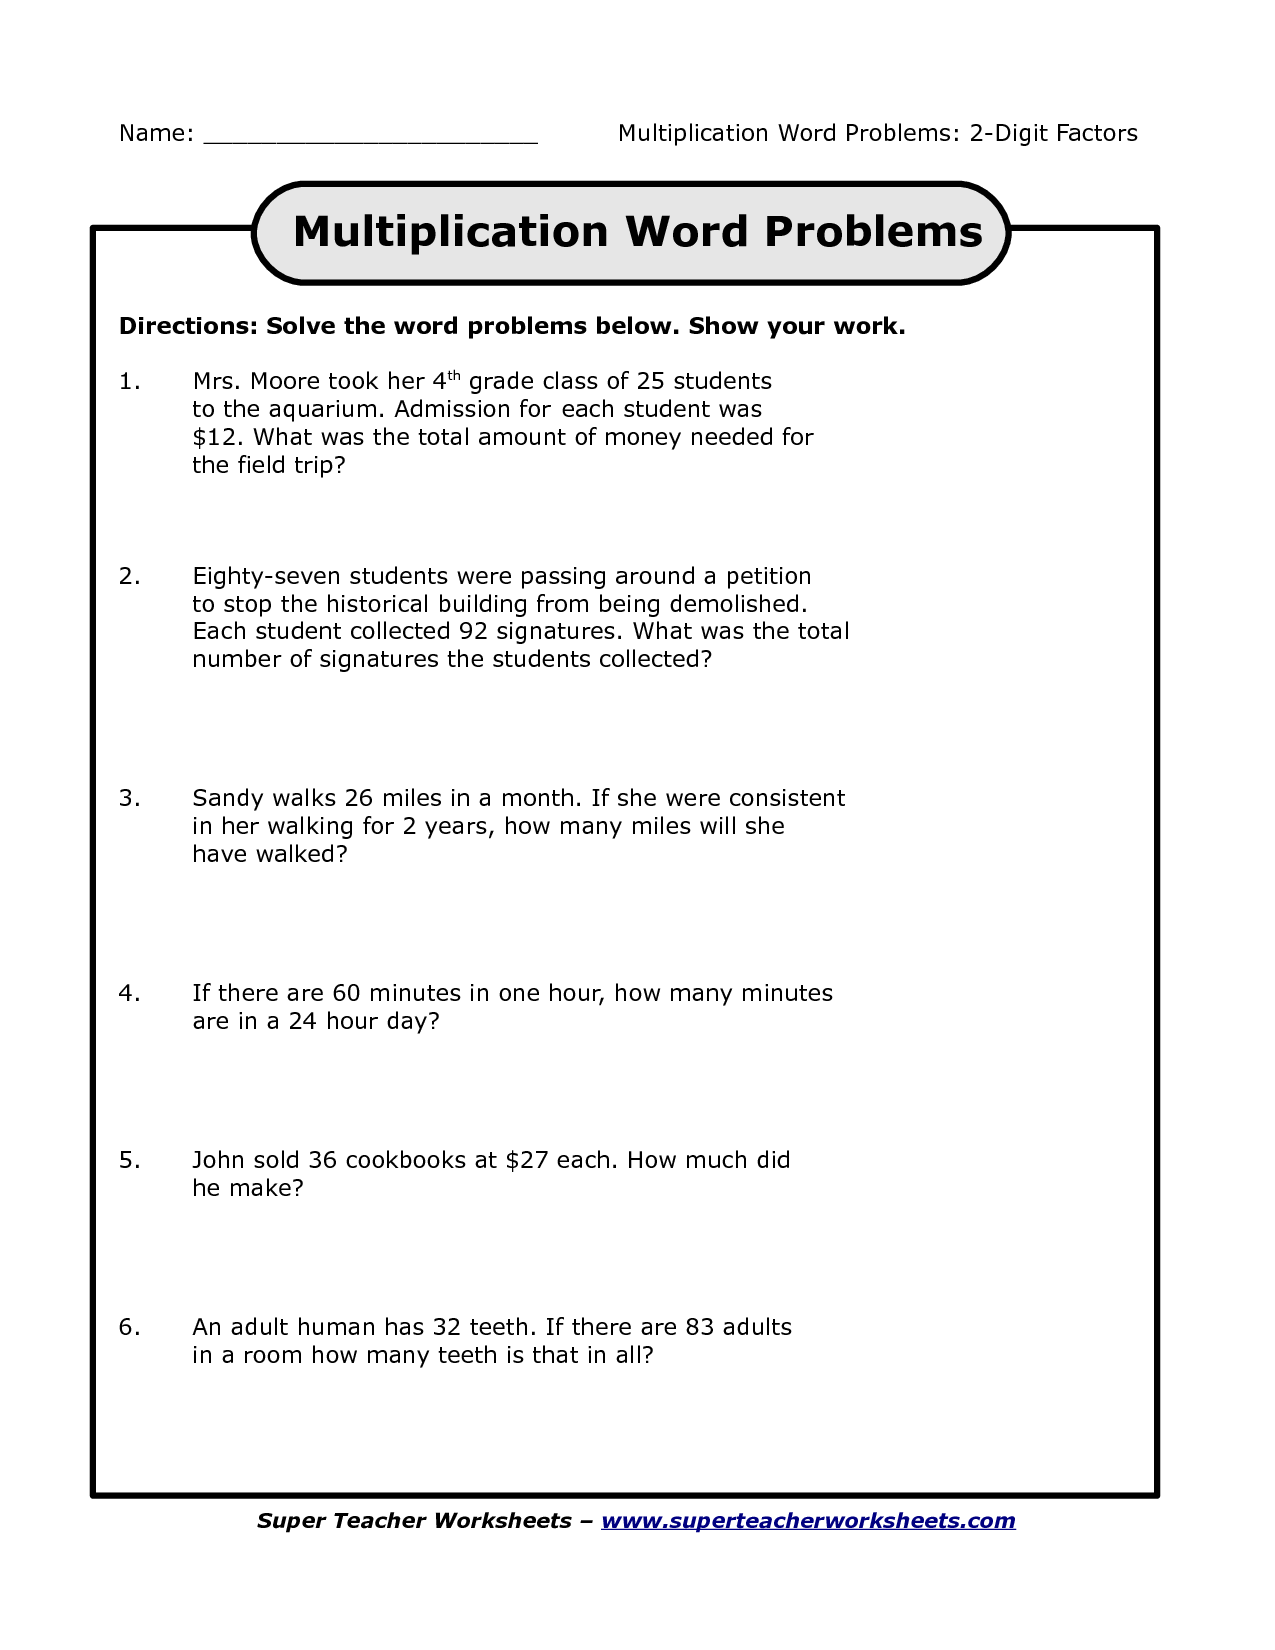 Trumus Biz Multiplication Word Problems Word Problems Math